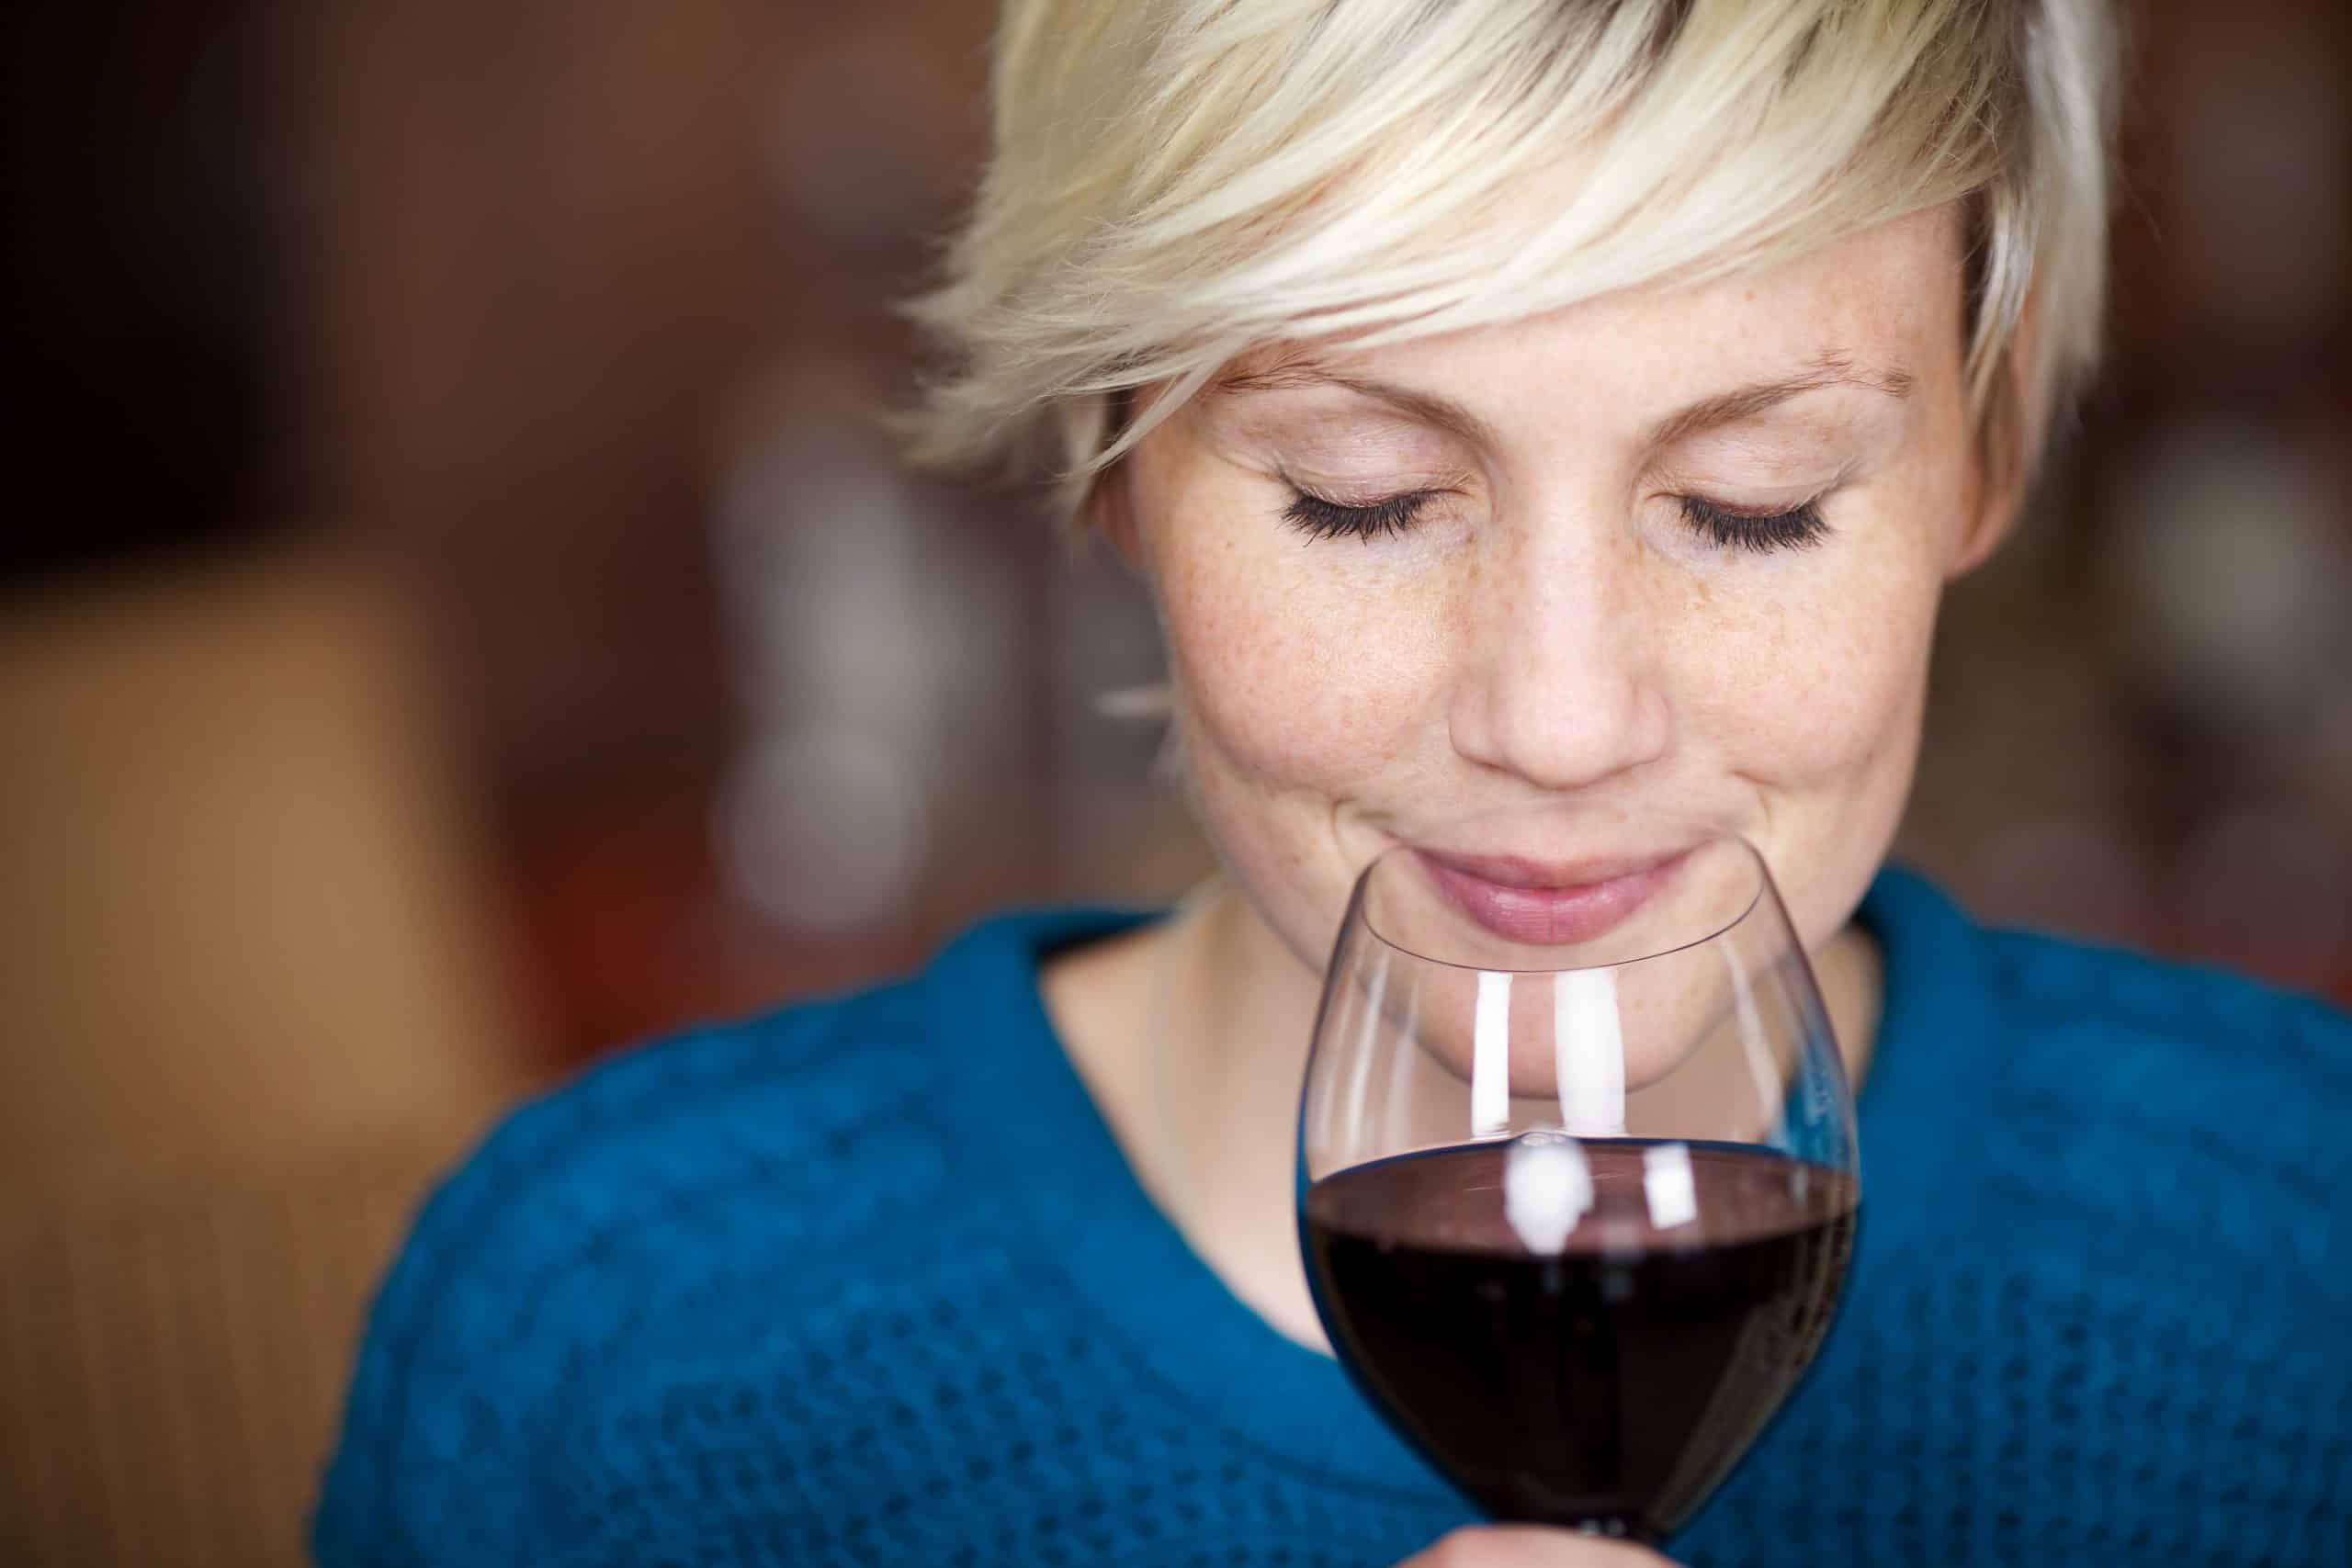 Closeup,Portrait,Of,Young,Female,Customer,Drinking,Red,Wine,With